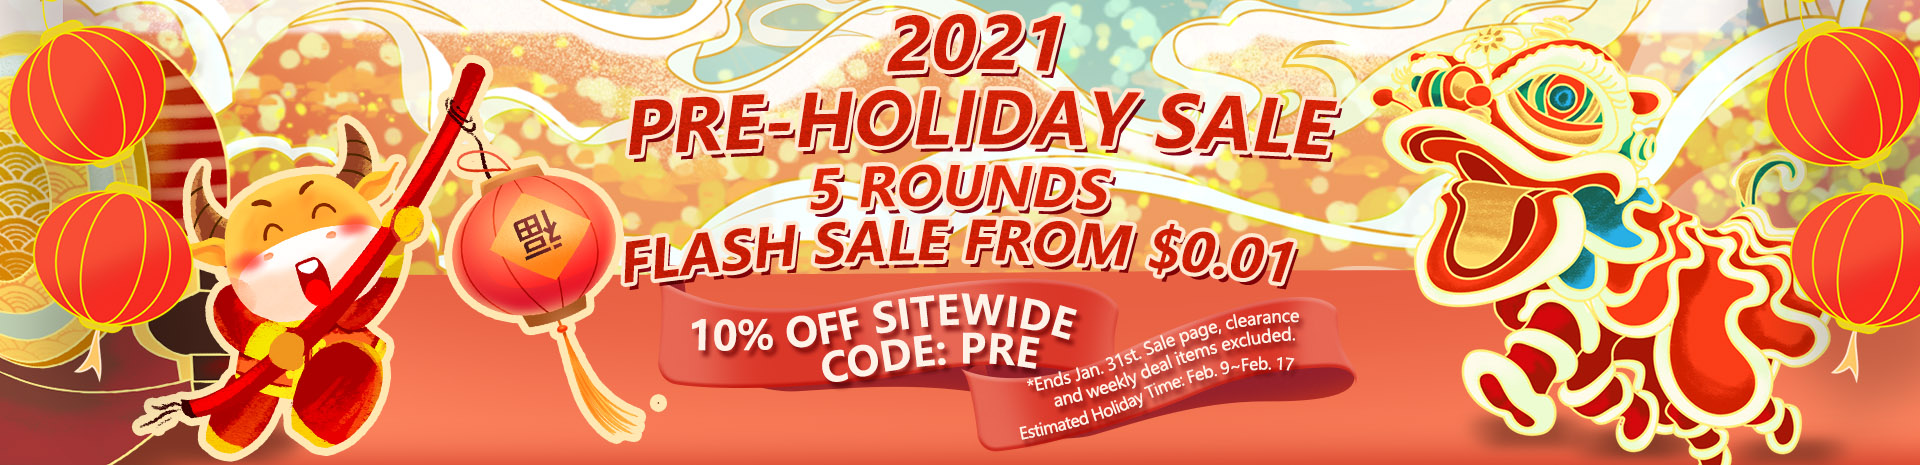 2021 Pre Holiday Sale Banner